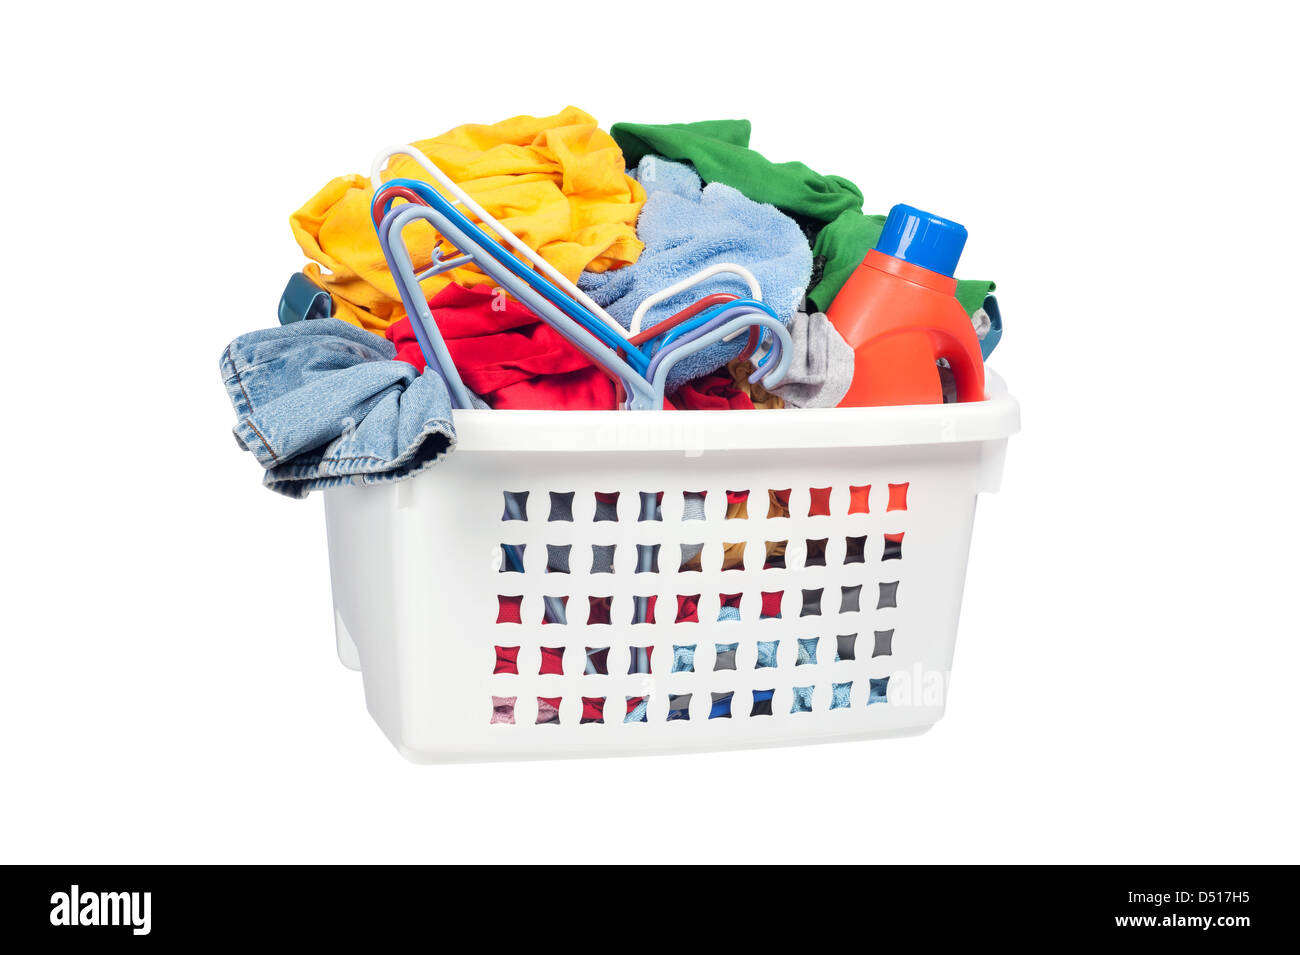 A laundry basket full of dirty clothing, clothes hangers and laundry detergent. Isolated on white for designer convenience. - Stock Image